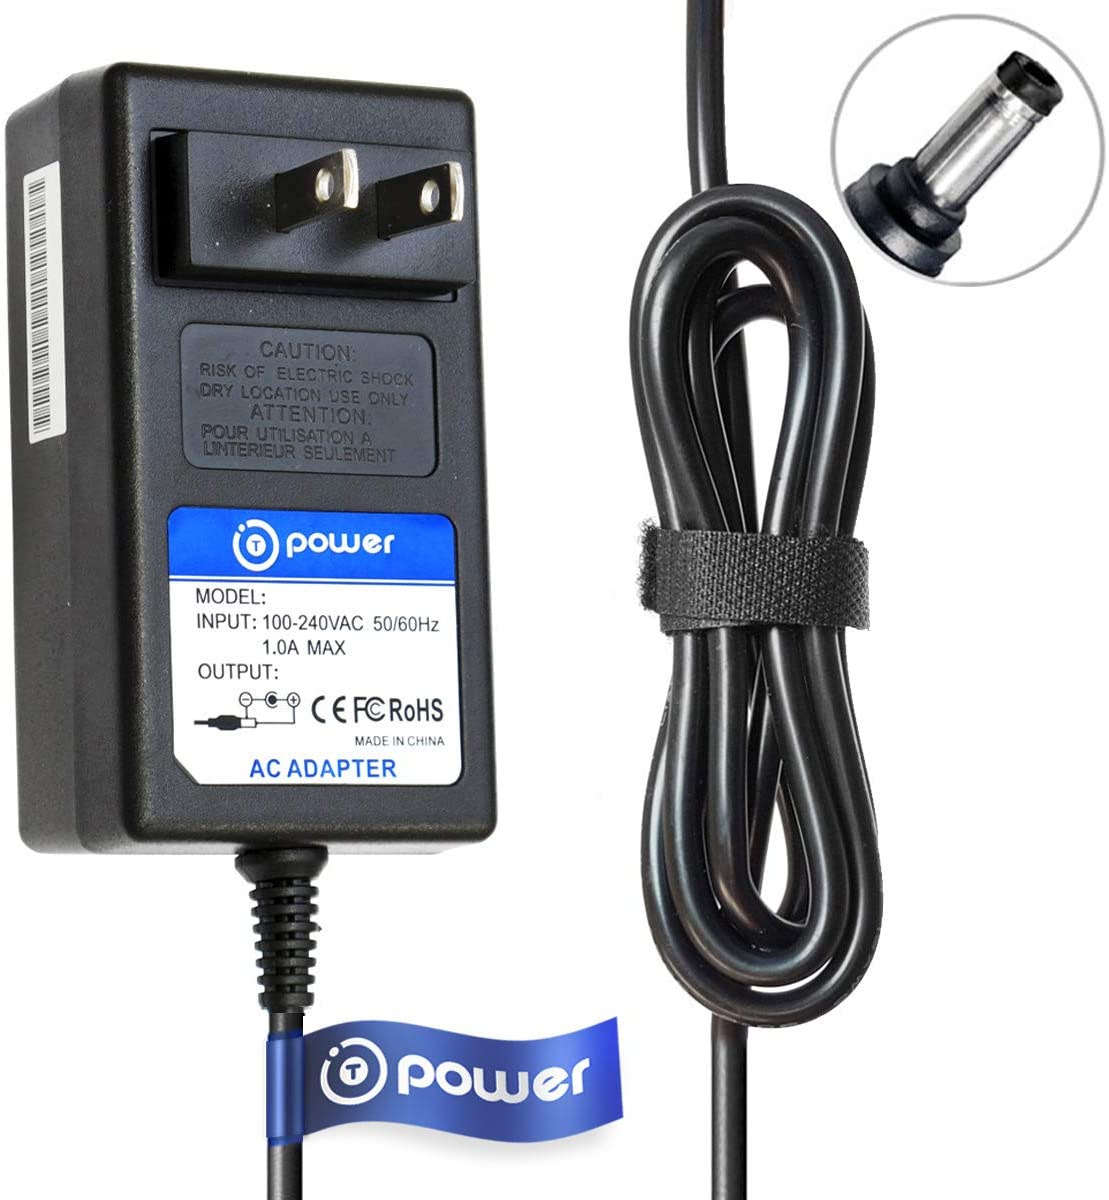 T POWER 19V Ac Dc Adapter Charger Compatible with Philips Lumea Prestige IPL Hair Removal Device BRI950 BRI951 BRI952 BRI953 BRI954 BRI956 BRI959 Power Supply Cord